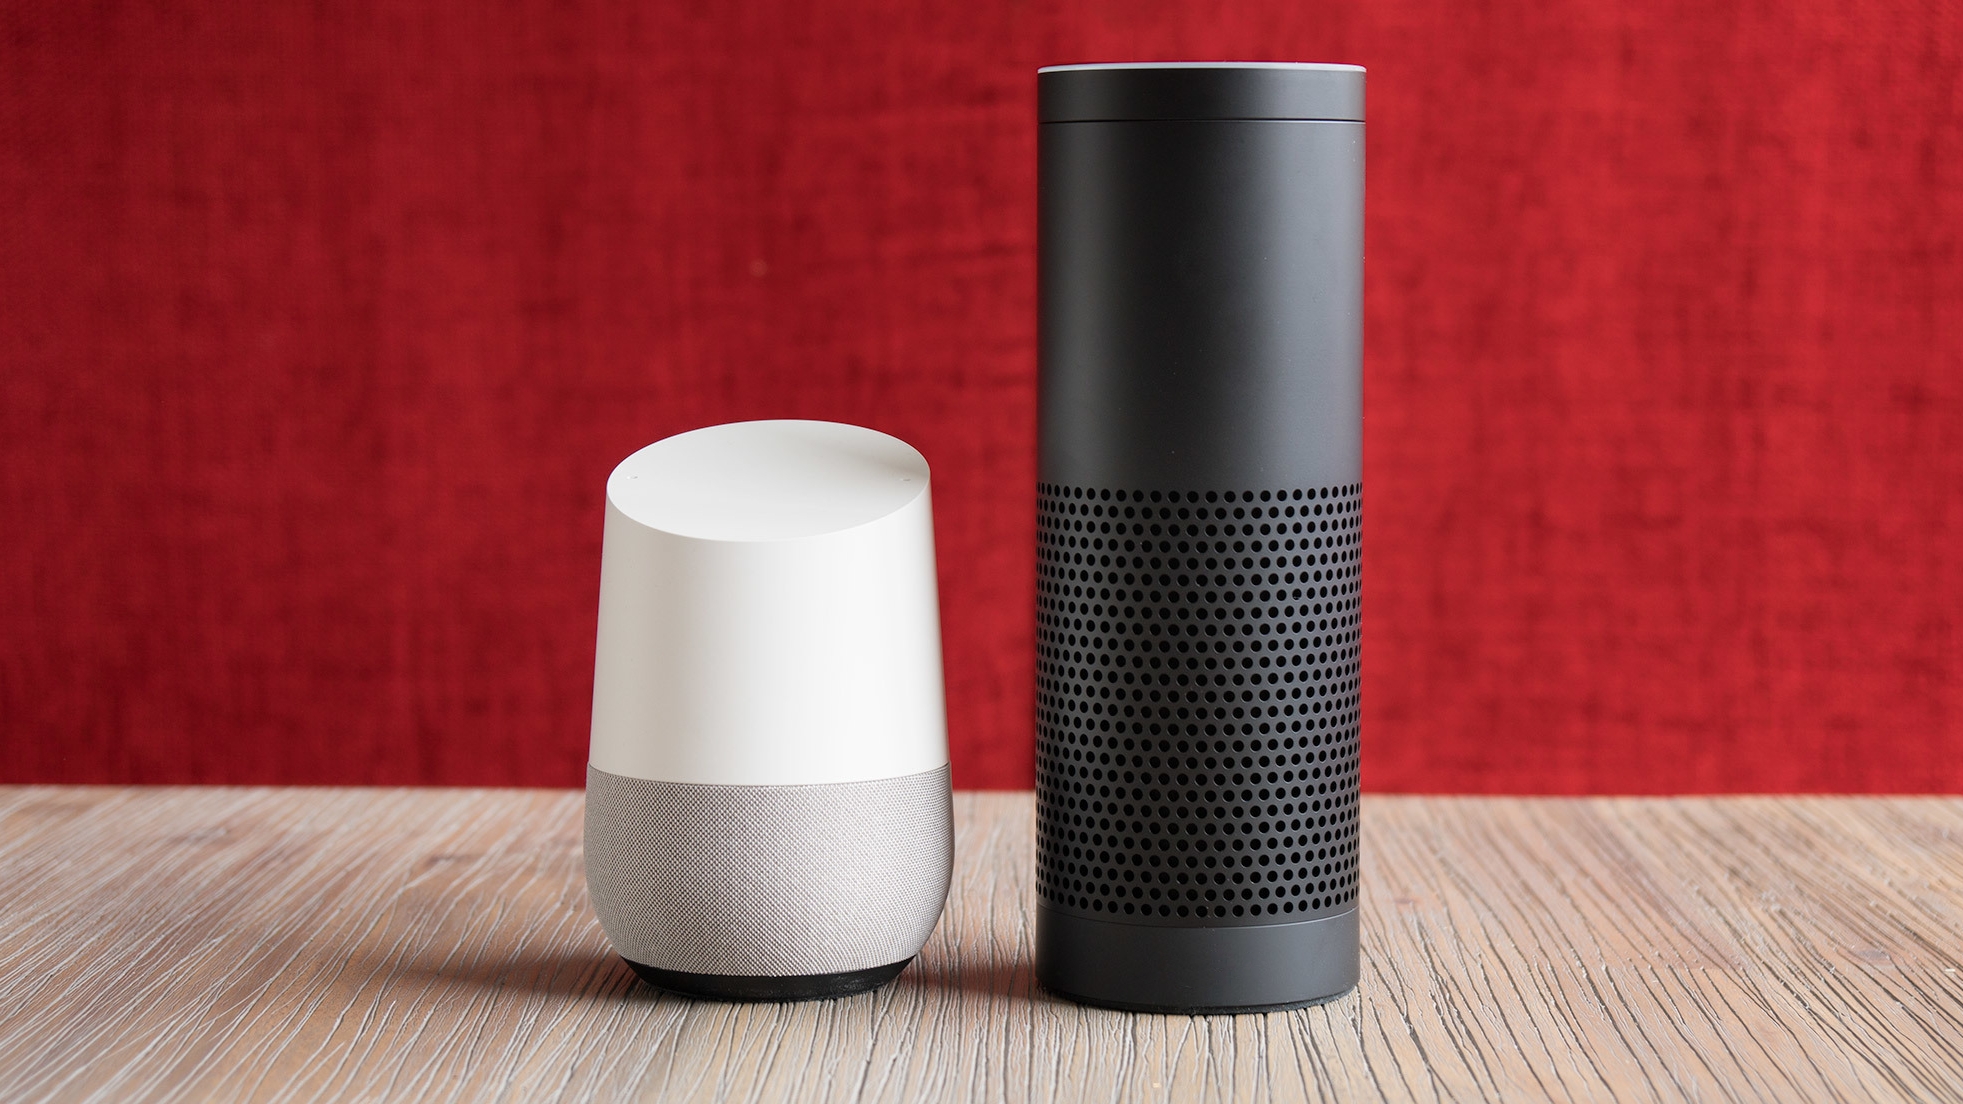 google home amazon echo 16x9